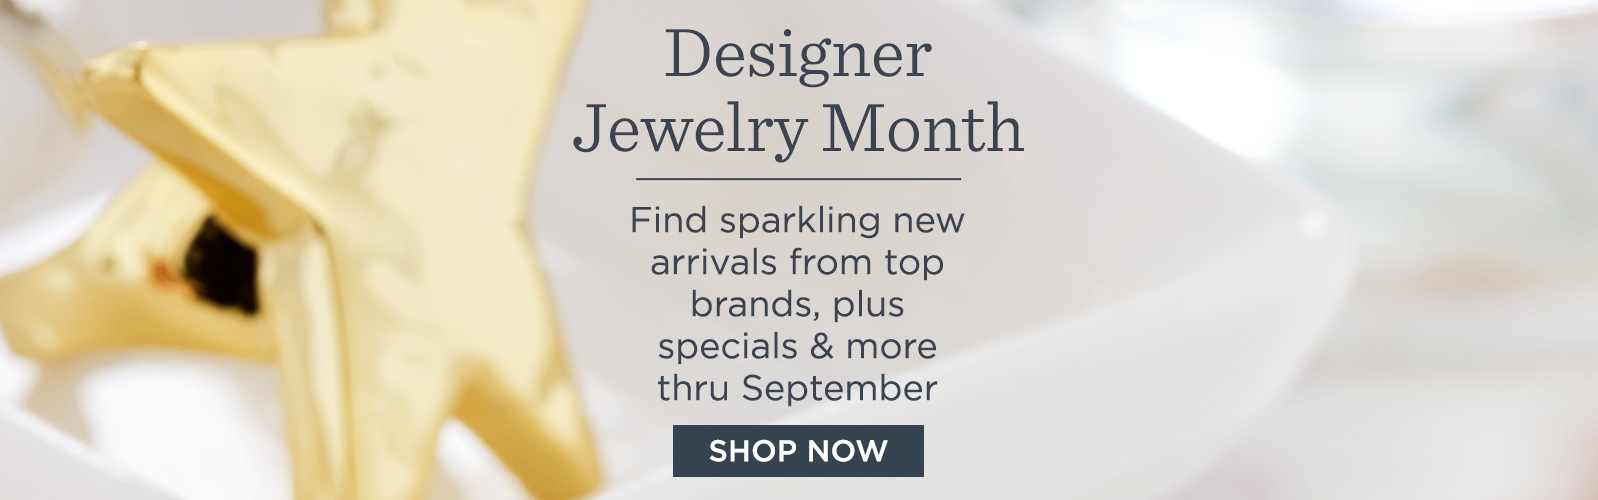 Designer Jewelry Month  Find sparkling new arrivals from top brands, plus specials & more thru September